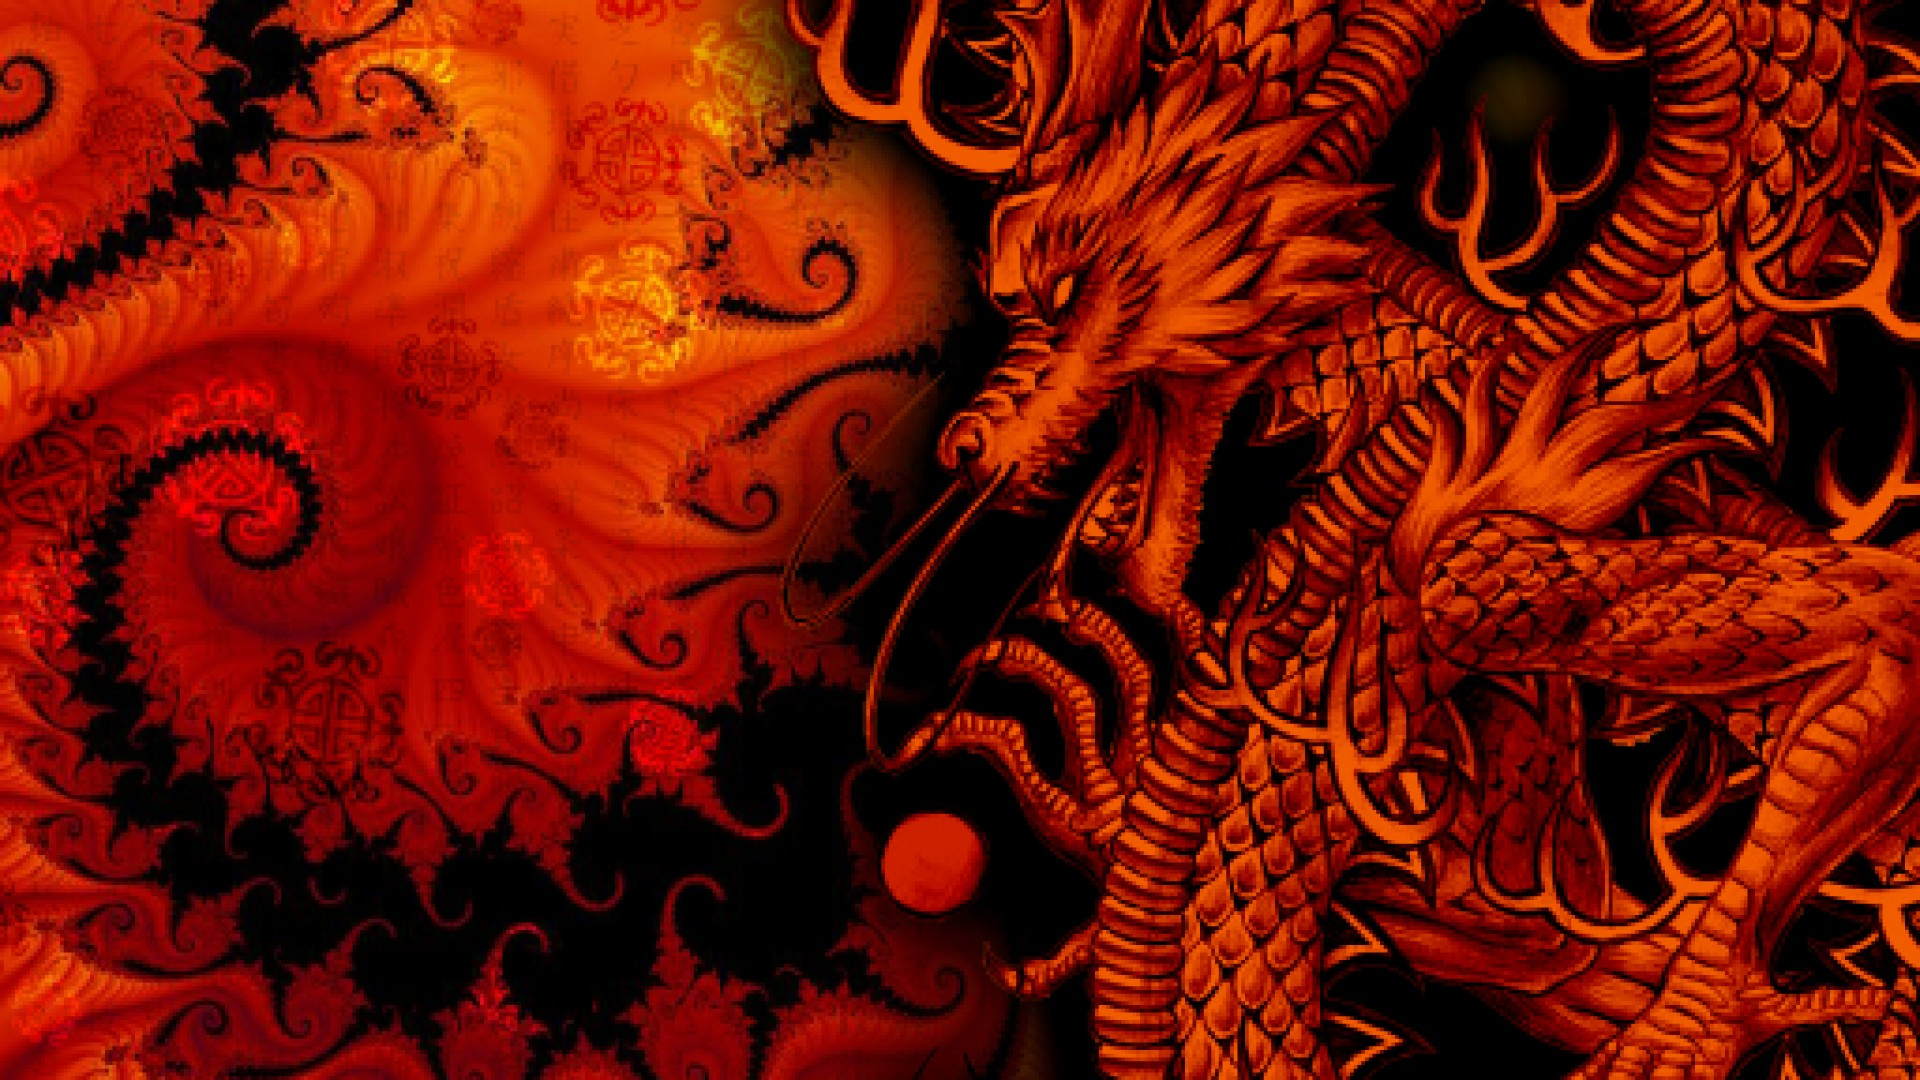 Free Download Red Dragon Wallpaper Hd 1080p Hd Wallpapers On Picsfaircom 1920x1080 For Your Desktop Mobile Tablet Explore 49 Red And Black Dragon Wallpaper Red And Black Dragon Wallpaper